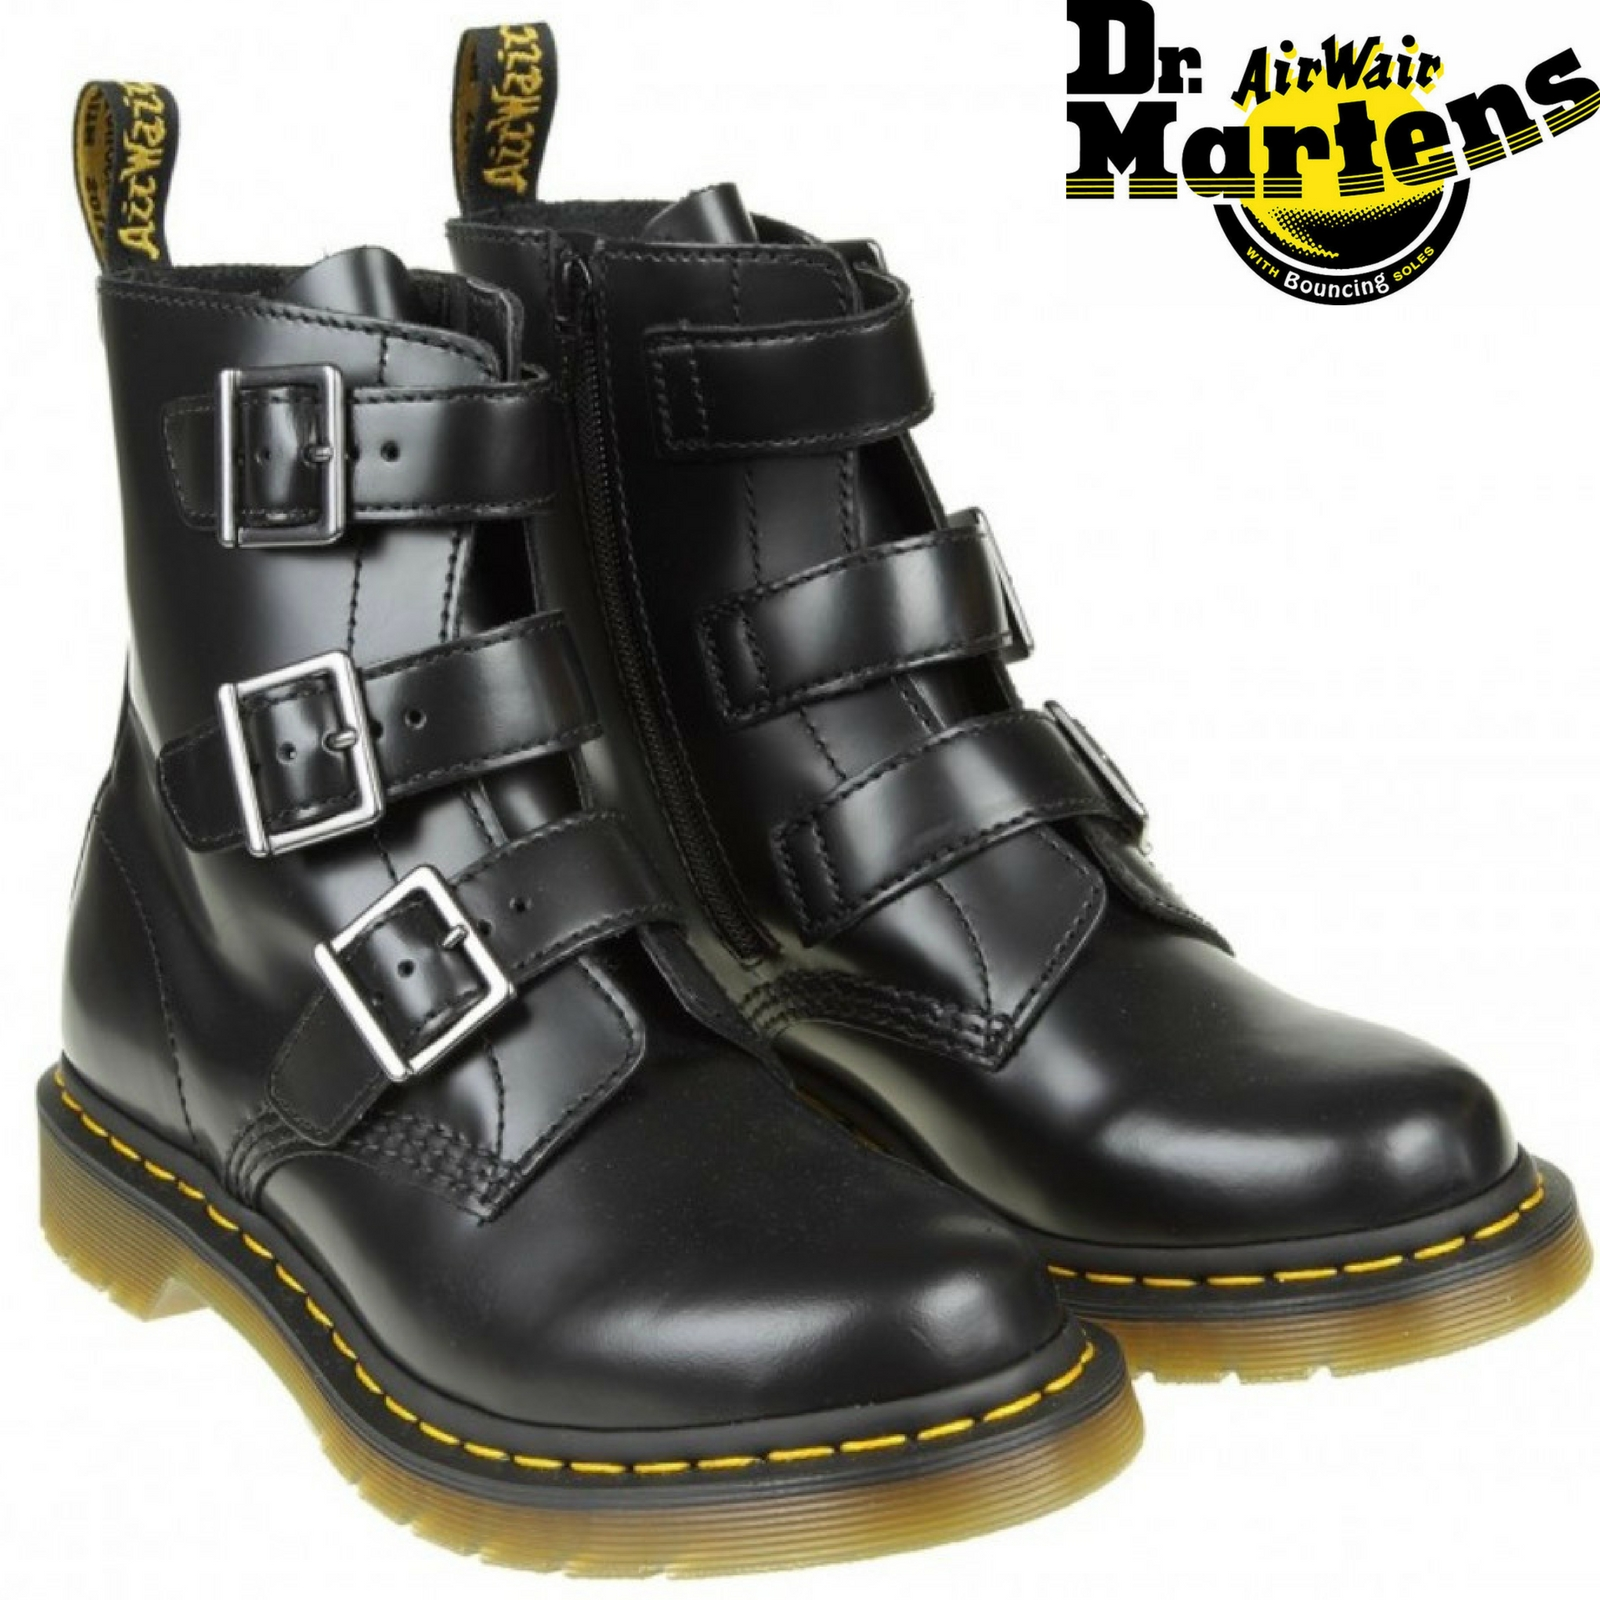 b80e650e0979 Dr. Martens Blake Boots with Buckles Ankle Shoes Genuine Leather 3 ...